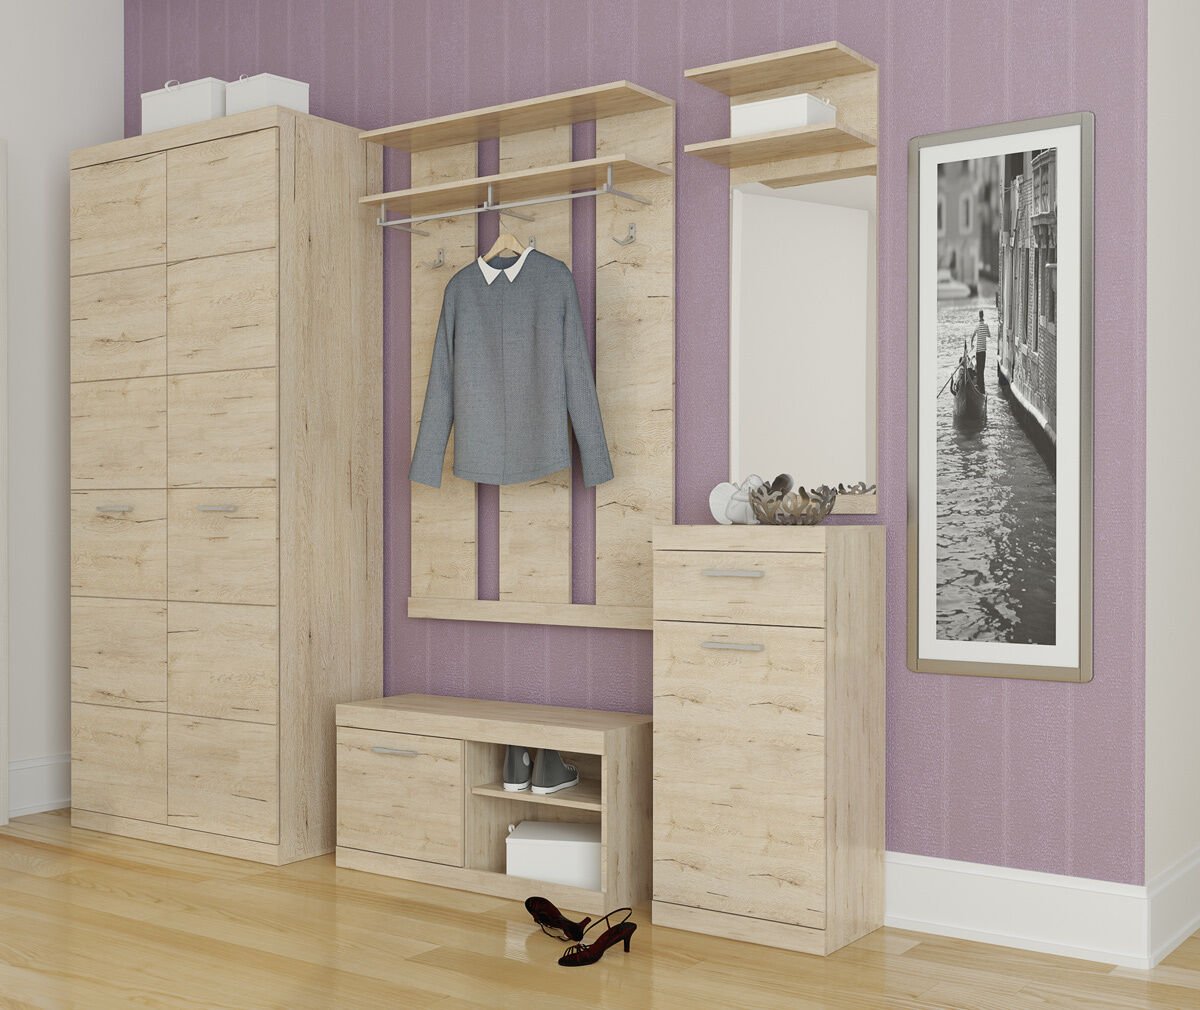 garderobe dielenset garderobenschrank 90cm spiegel schuhbank sanremo eiche neu eur 359 00. Black Bedroom Furniture Sets. Home Design Ideas